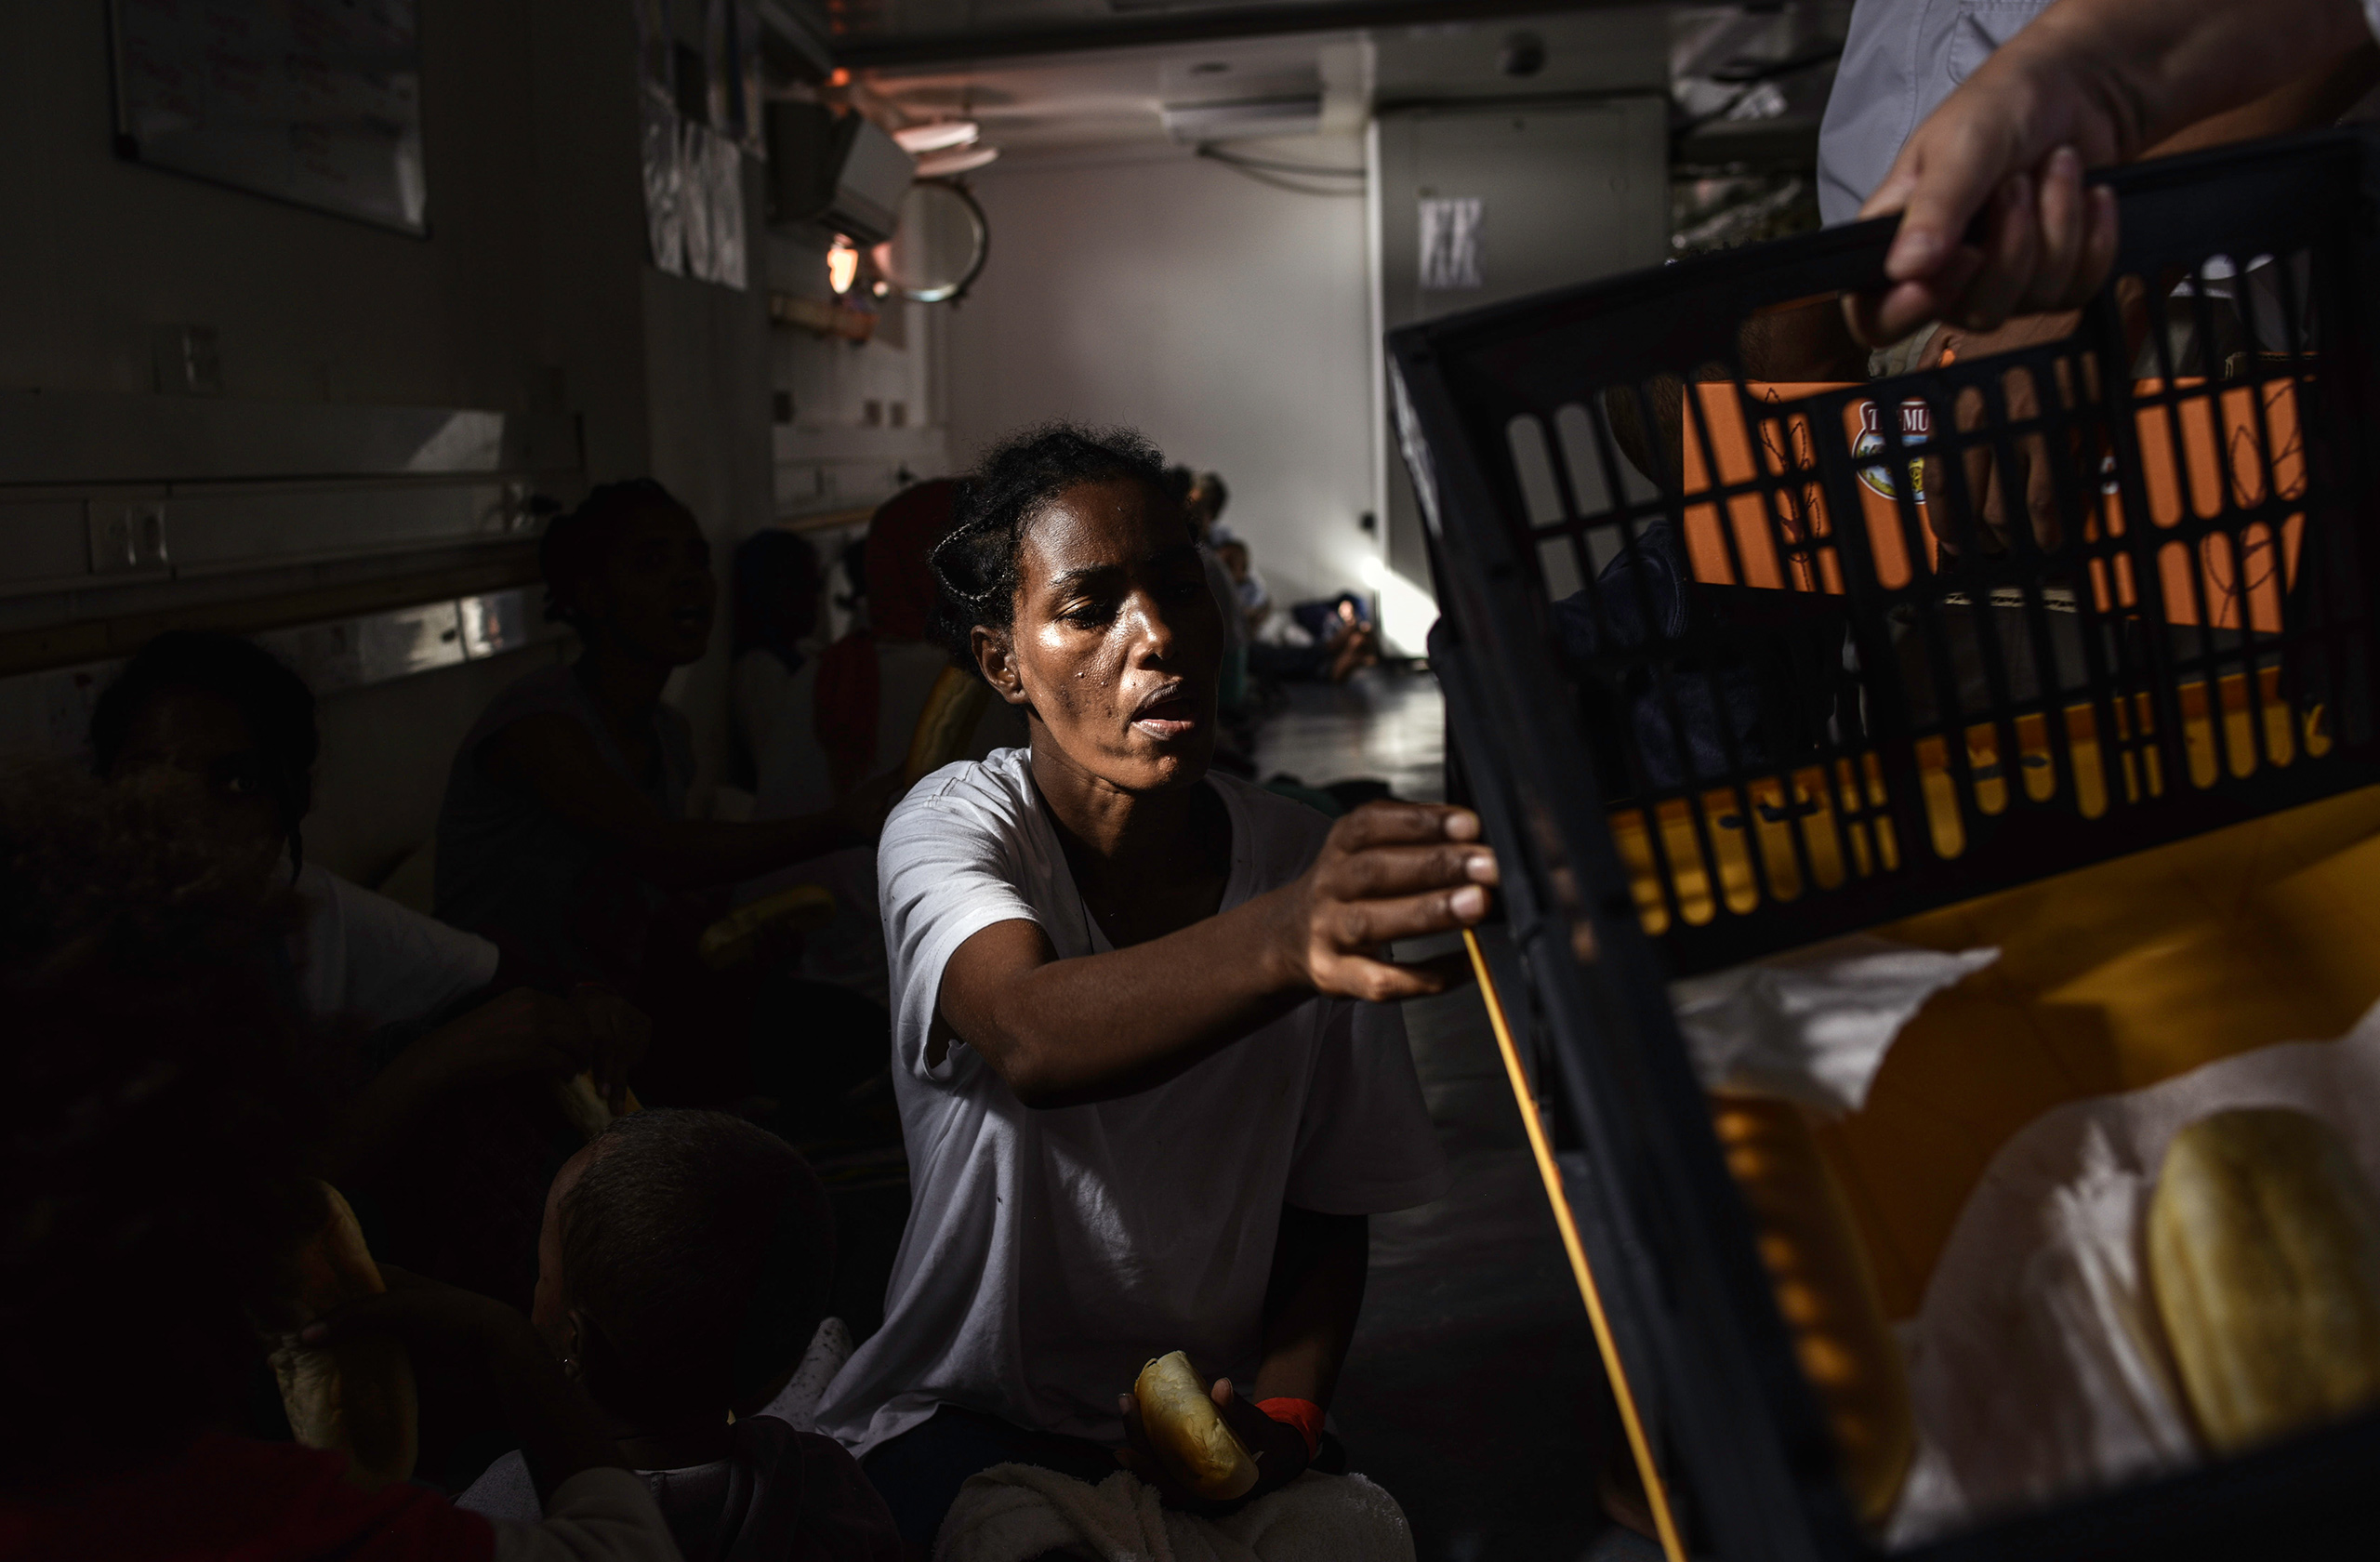 A hungry Eritrean woman reaches for bread at breakfast, the morning after being rescued Aug. 22, 2016.